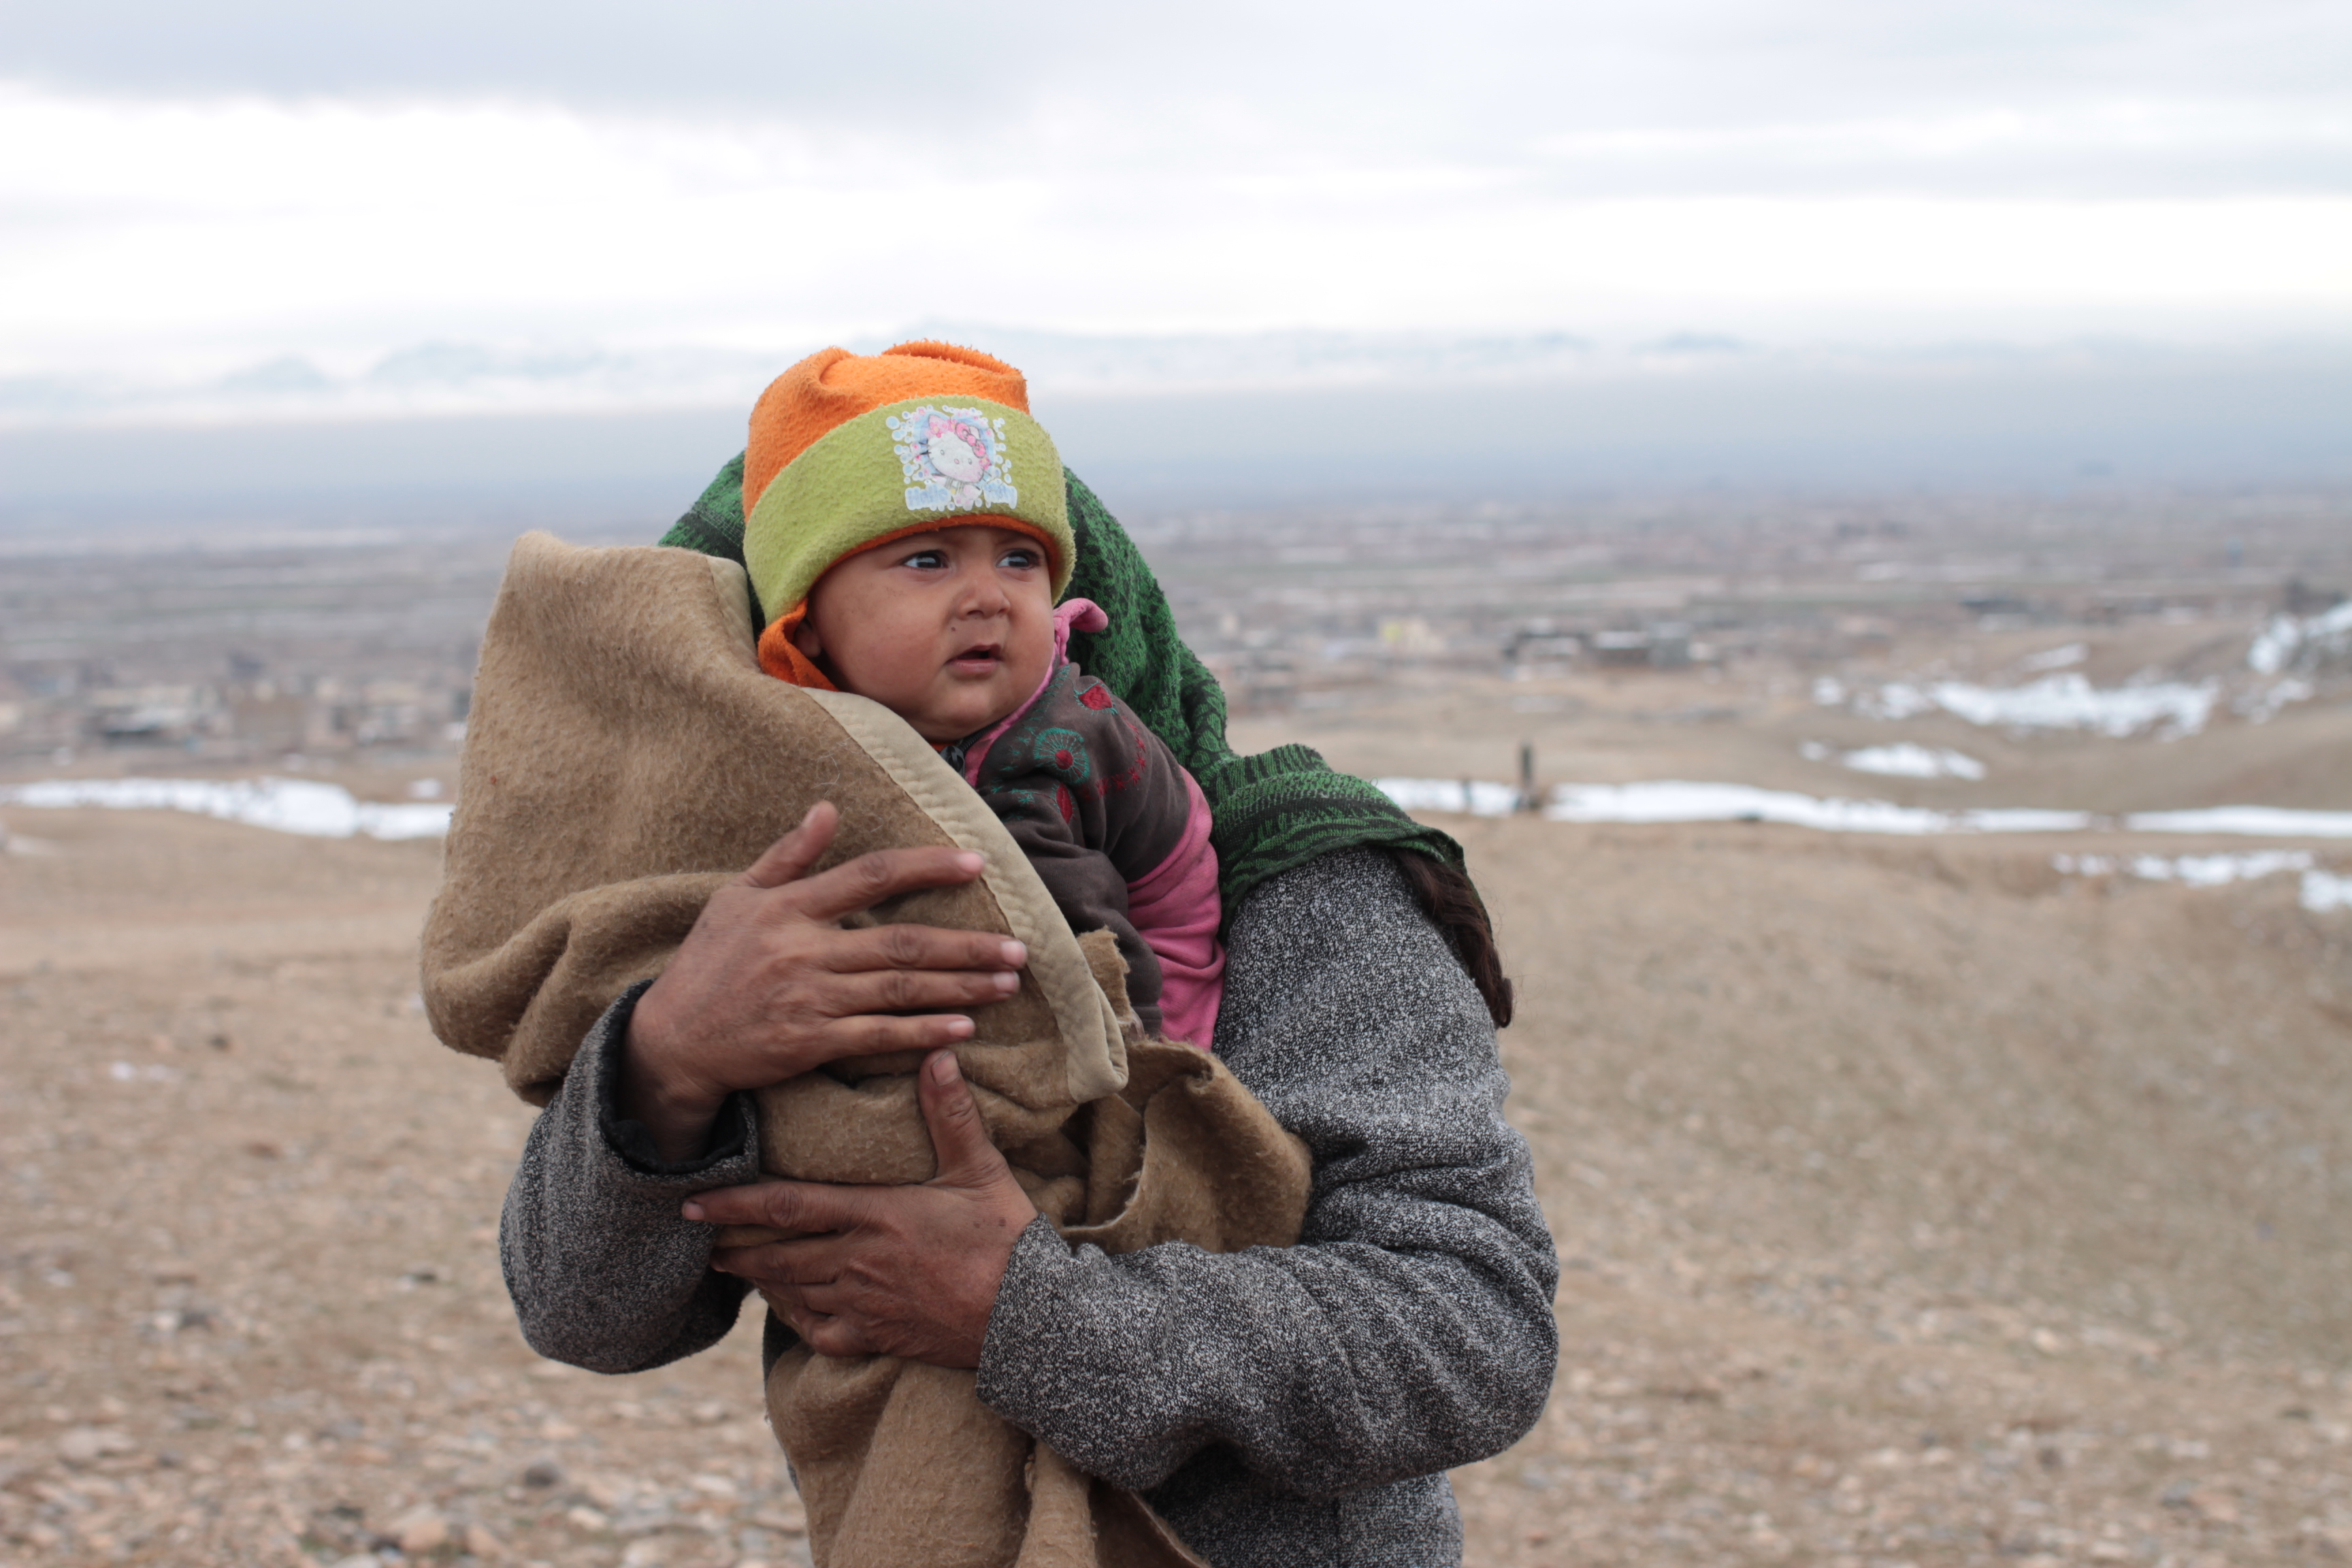 A displaced mother and child on the outskirts of Herat fled several months ago from Ghor province where rain fed crop harvests collapsed due to drought.